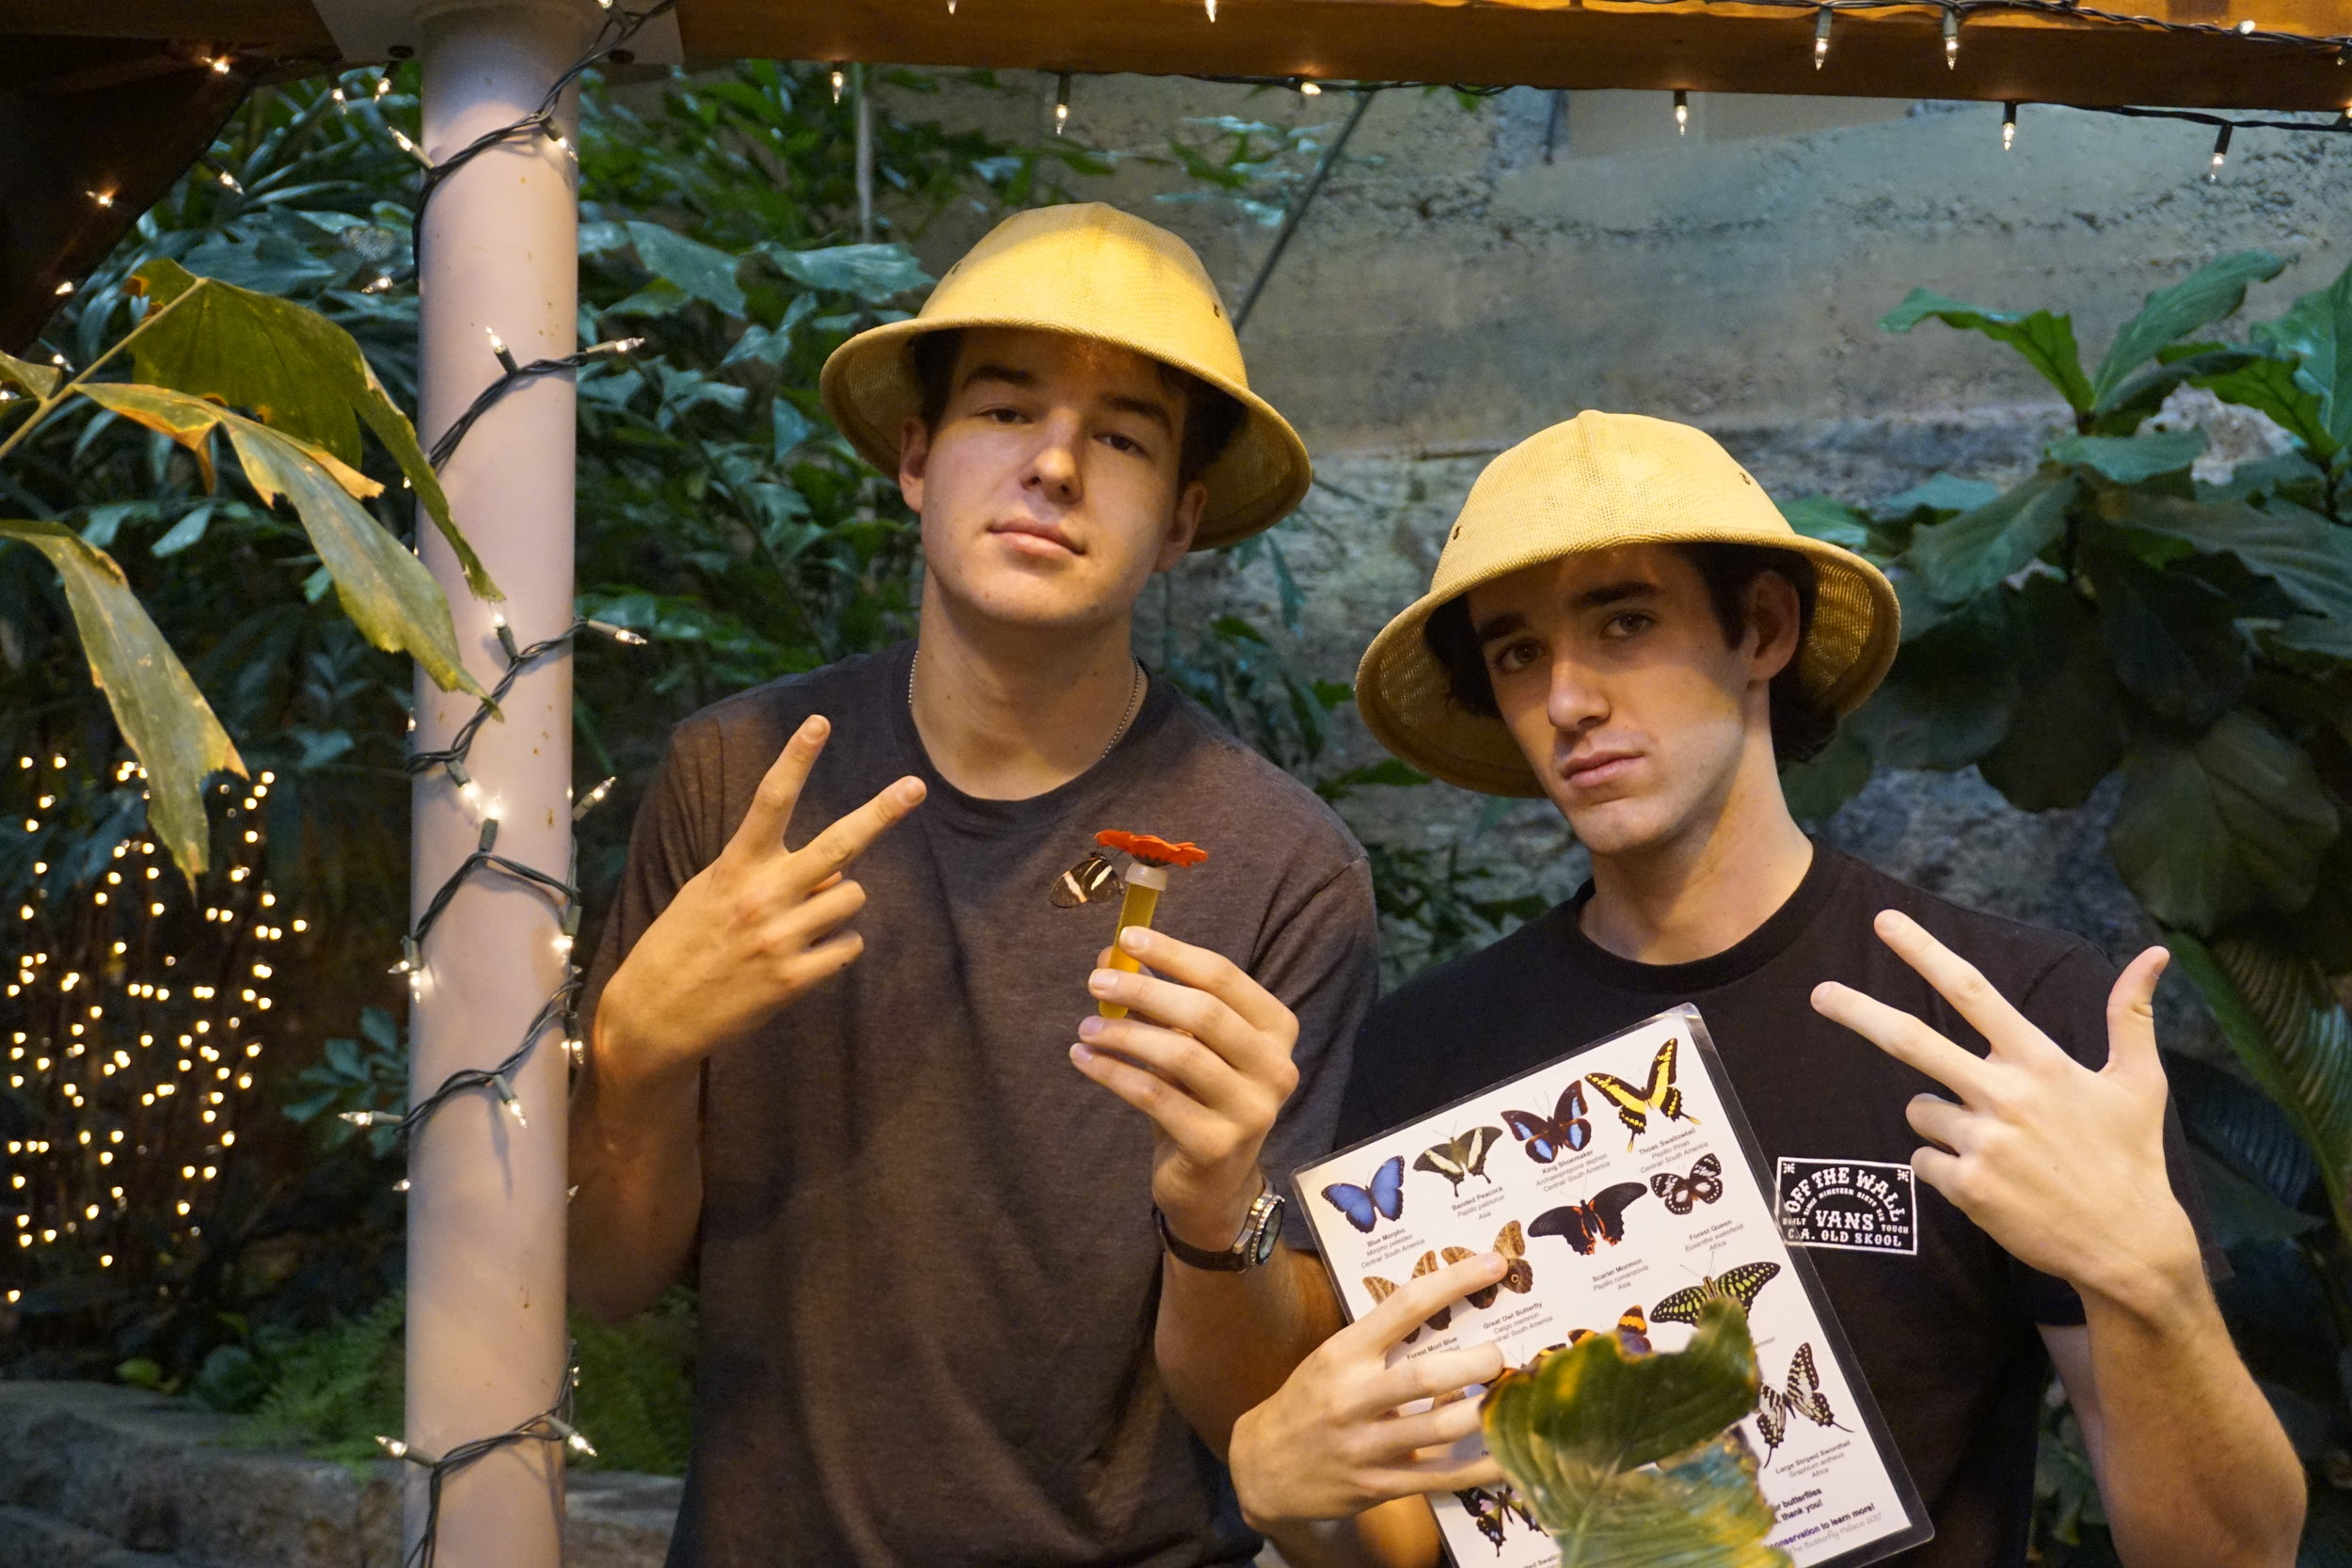 Students in hats